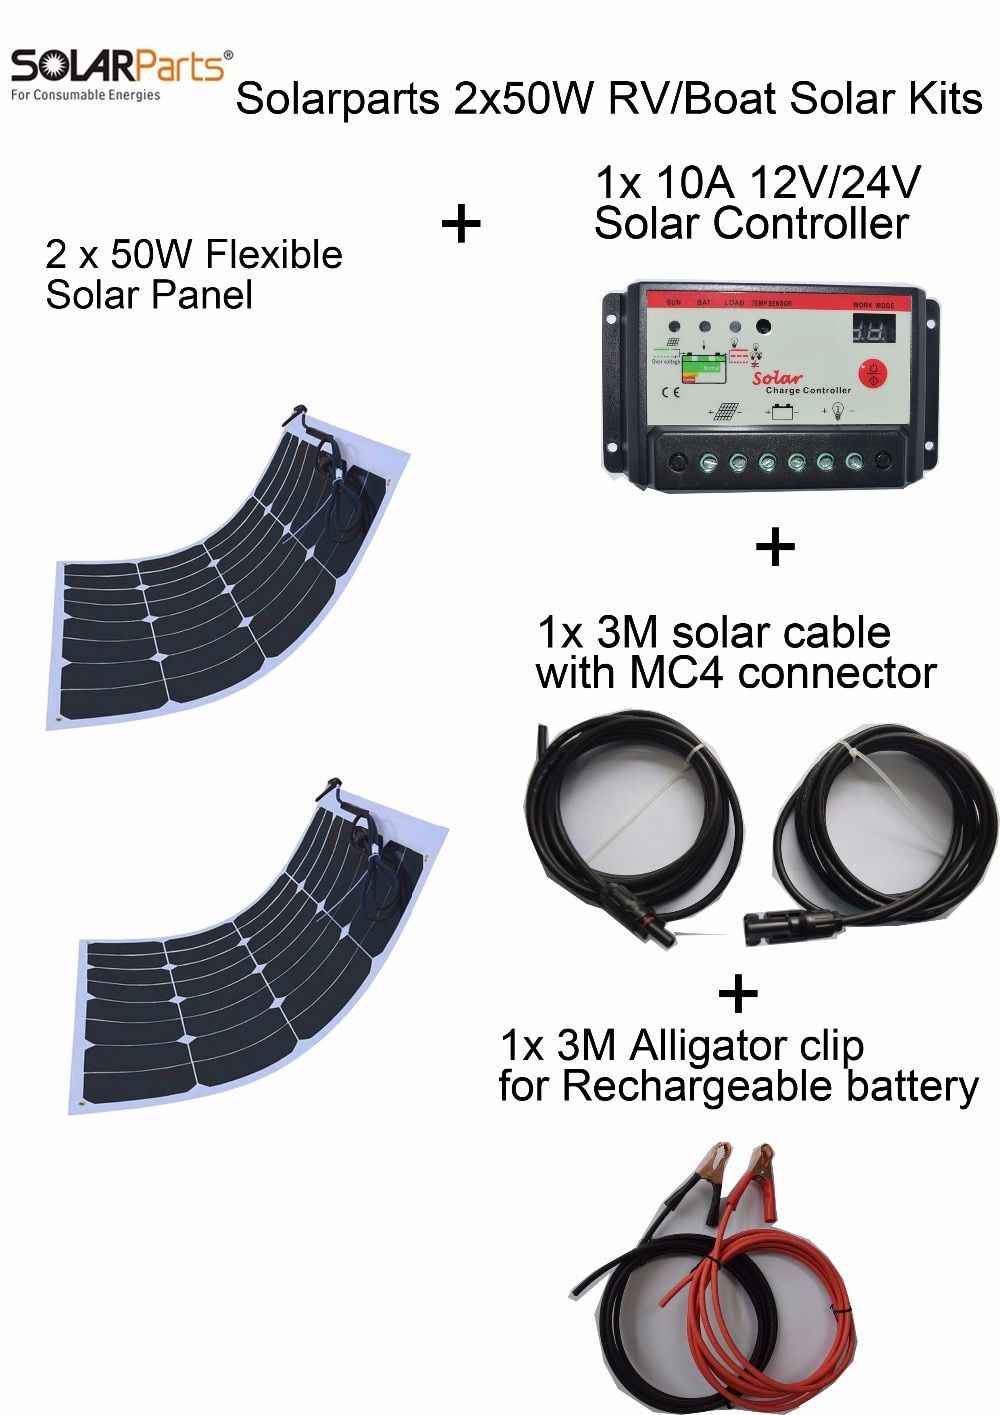 BOGUANG 2PCS 50W DIY solar system light weight flexible solar panel MONO solar modules 12V battery USB solar panel charger